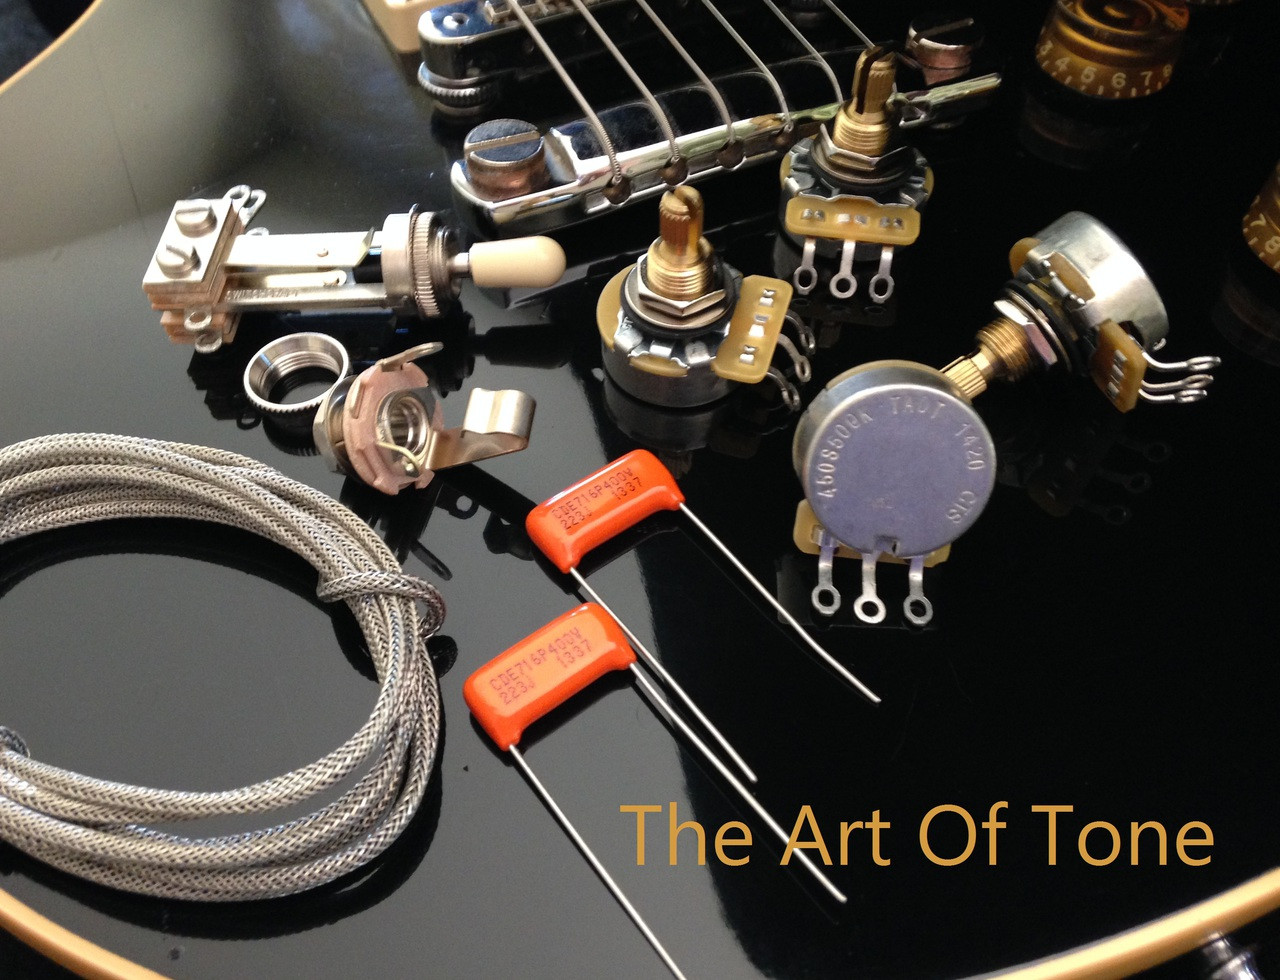 deluxe short shaft wiring kit for gibson usa les paul guitars rh theartoftone com les paul wiring kit les paul wiring kit push pull [ 1280 x 980 Pixel ]